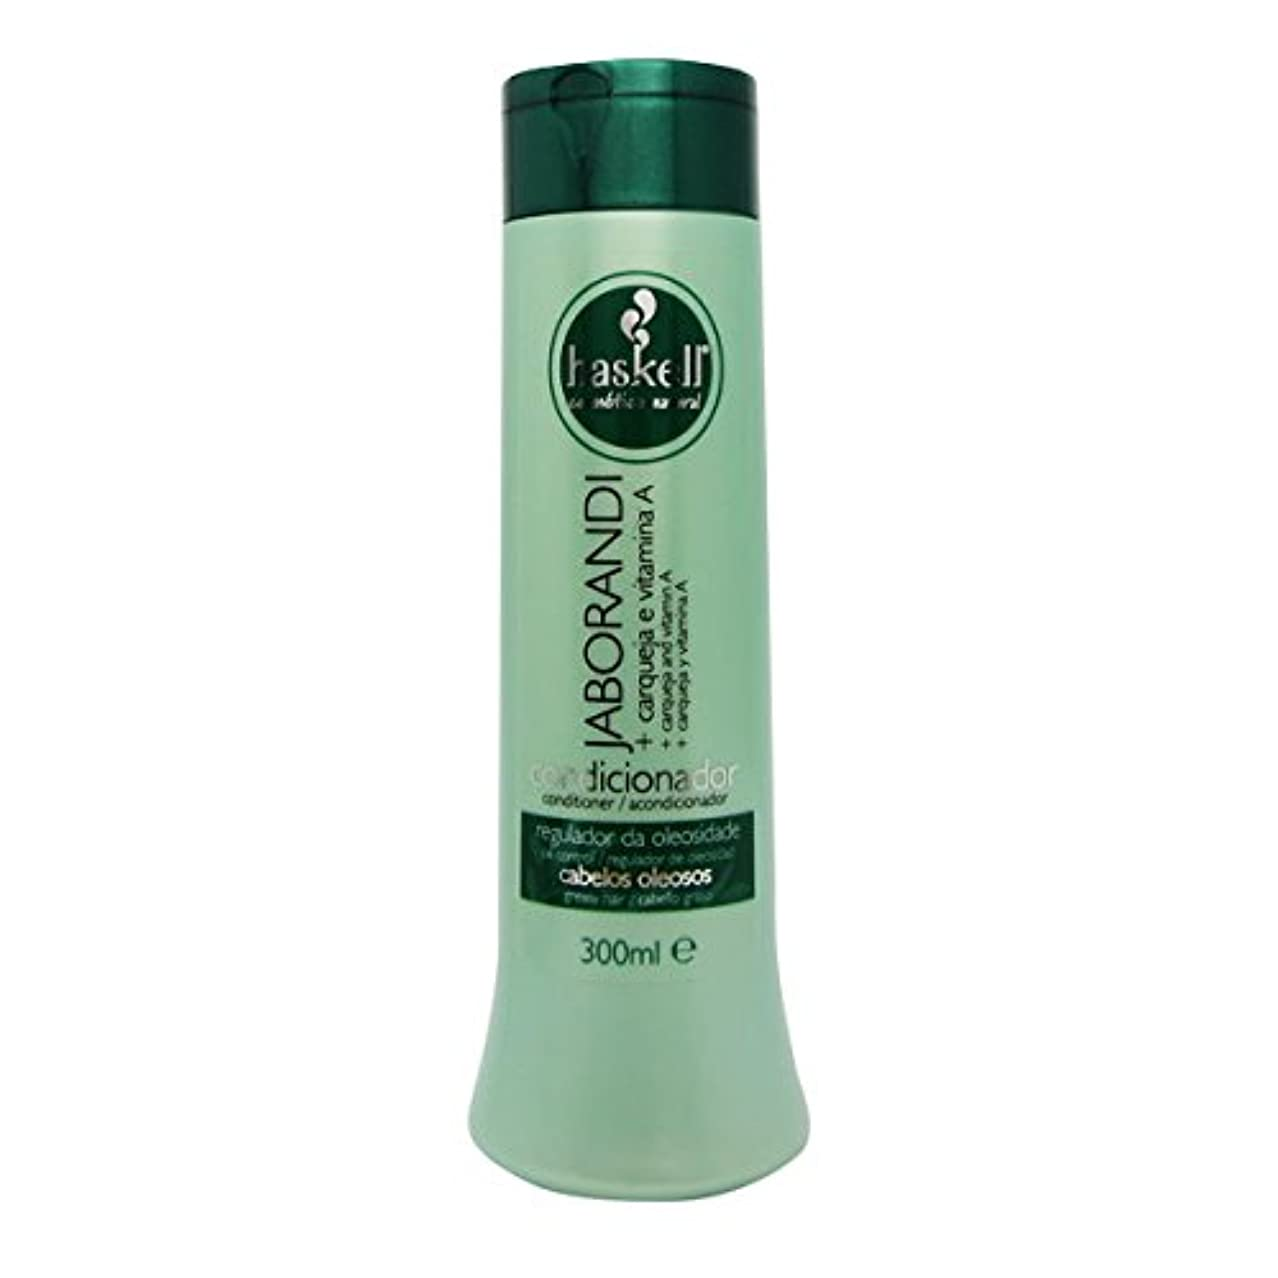 優勢先祖王族Haskell Jaborandi Conditioner 300ml [並行輸入品]